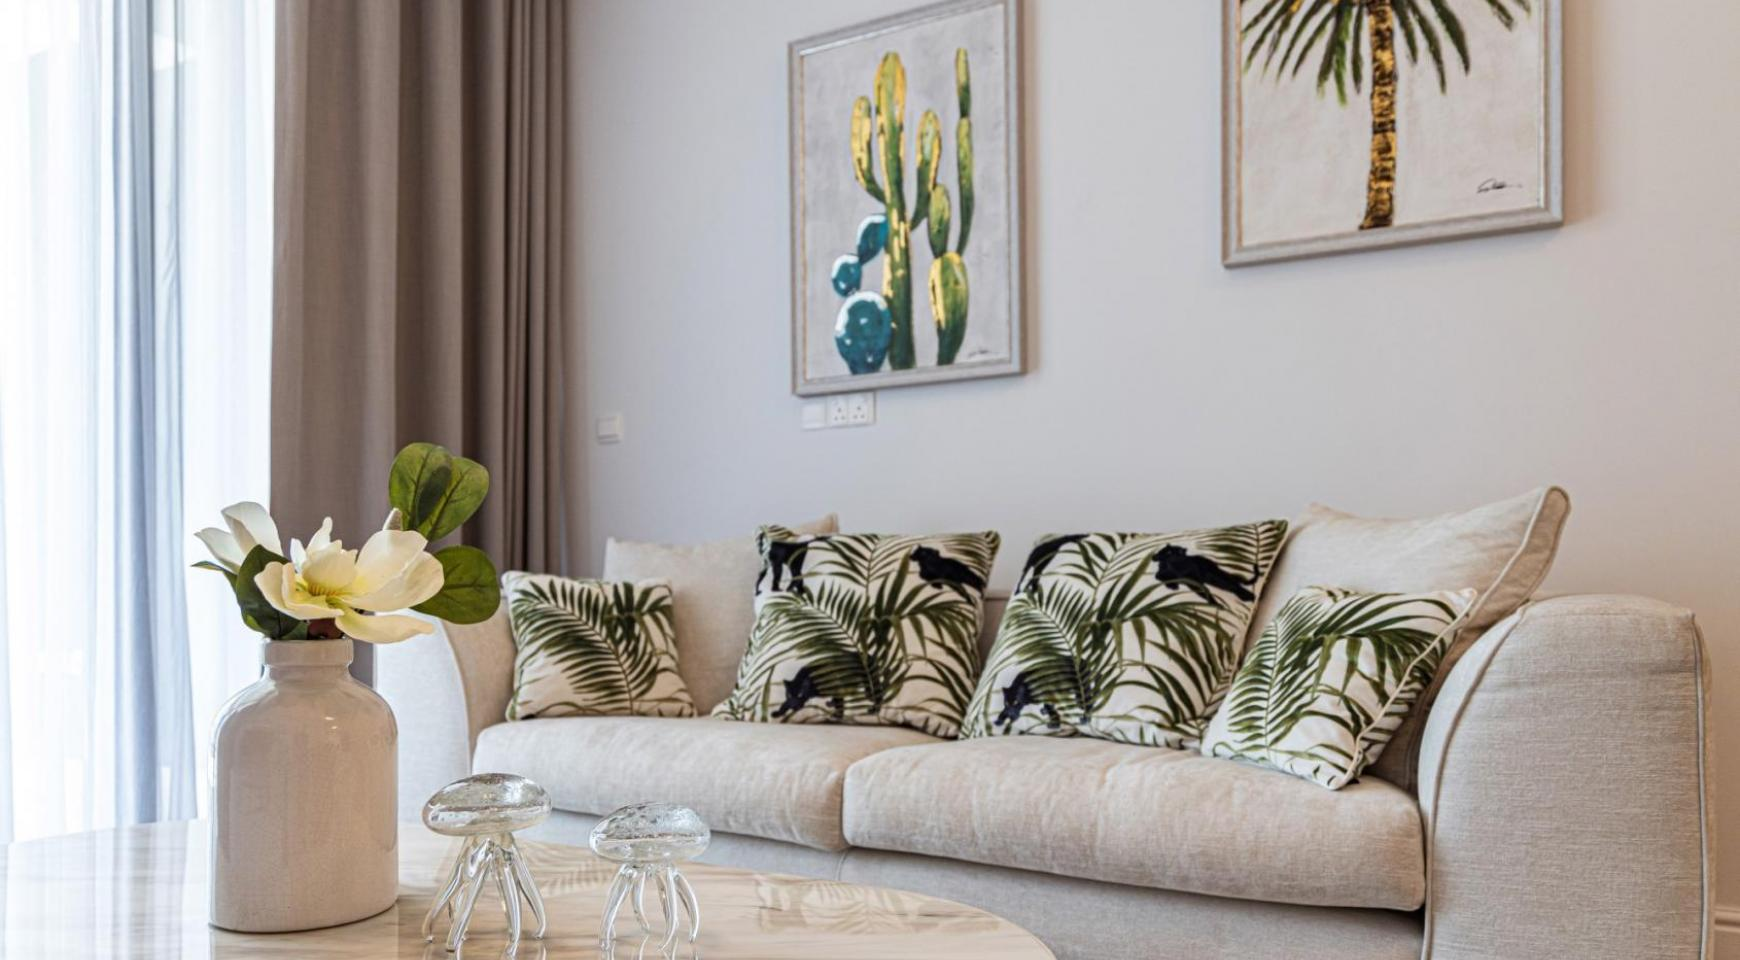 Hortensia Residence, Apt. 302. 2 Bedroom Apartment within a New Complex near the Sea  - 53